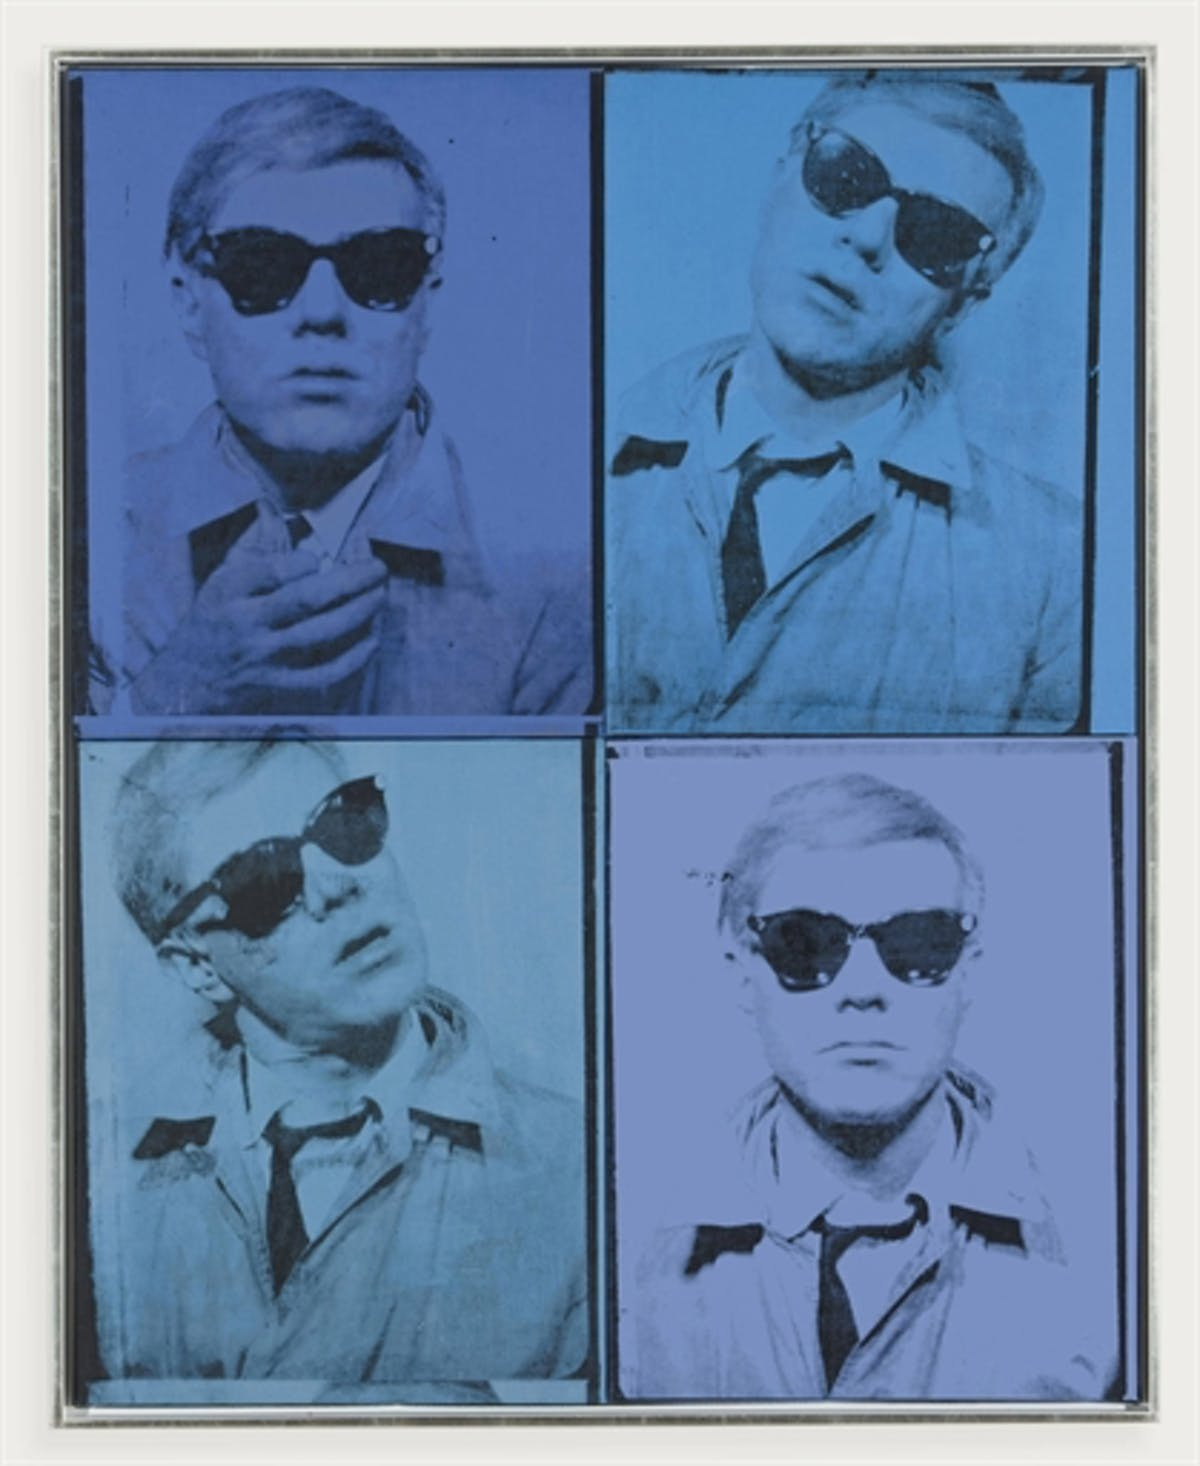 Self Portrait - one of the first. Sold by Christies in May 2011 for 38 442 500 USD. Image: Christie's